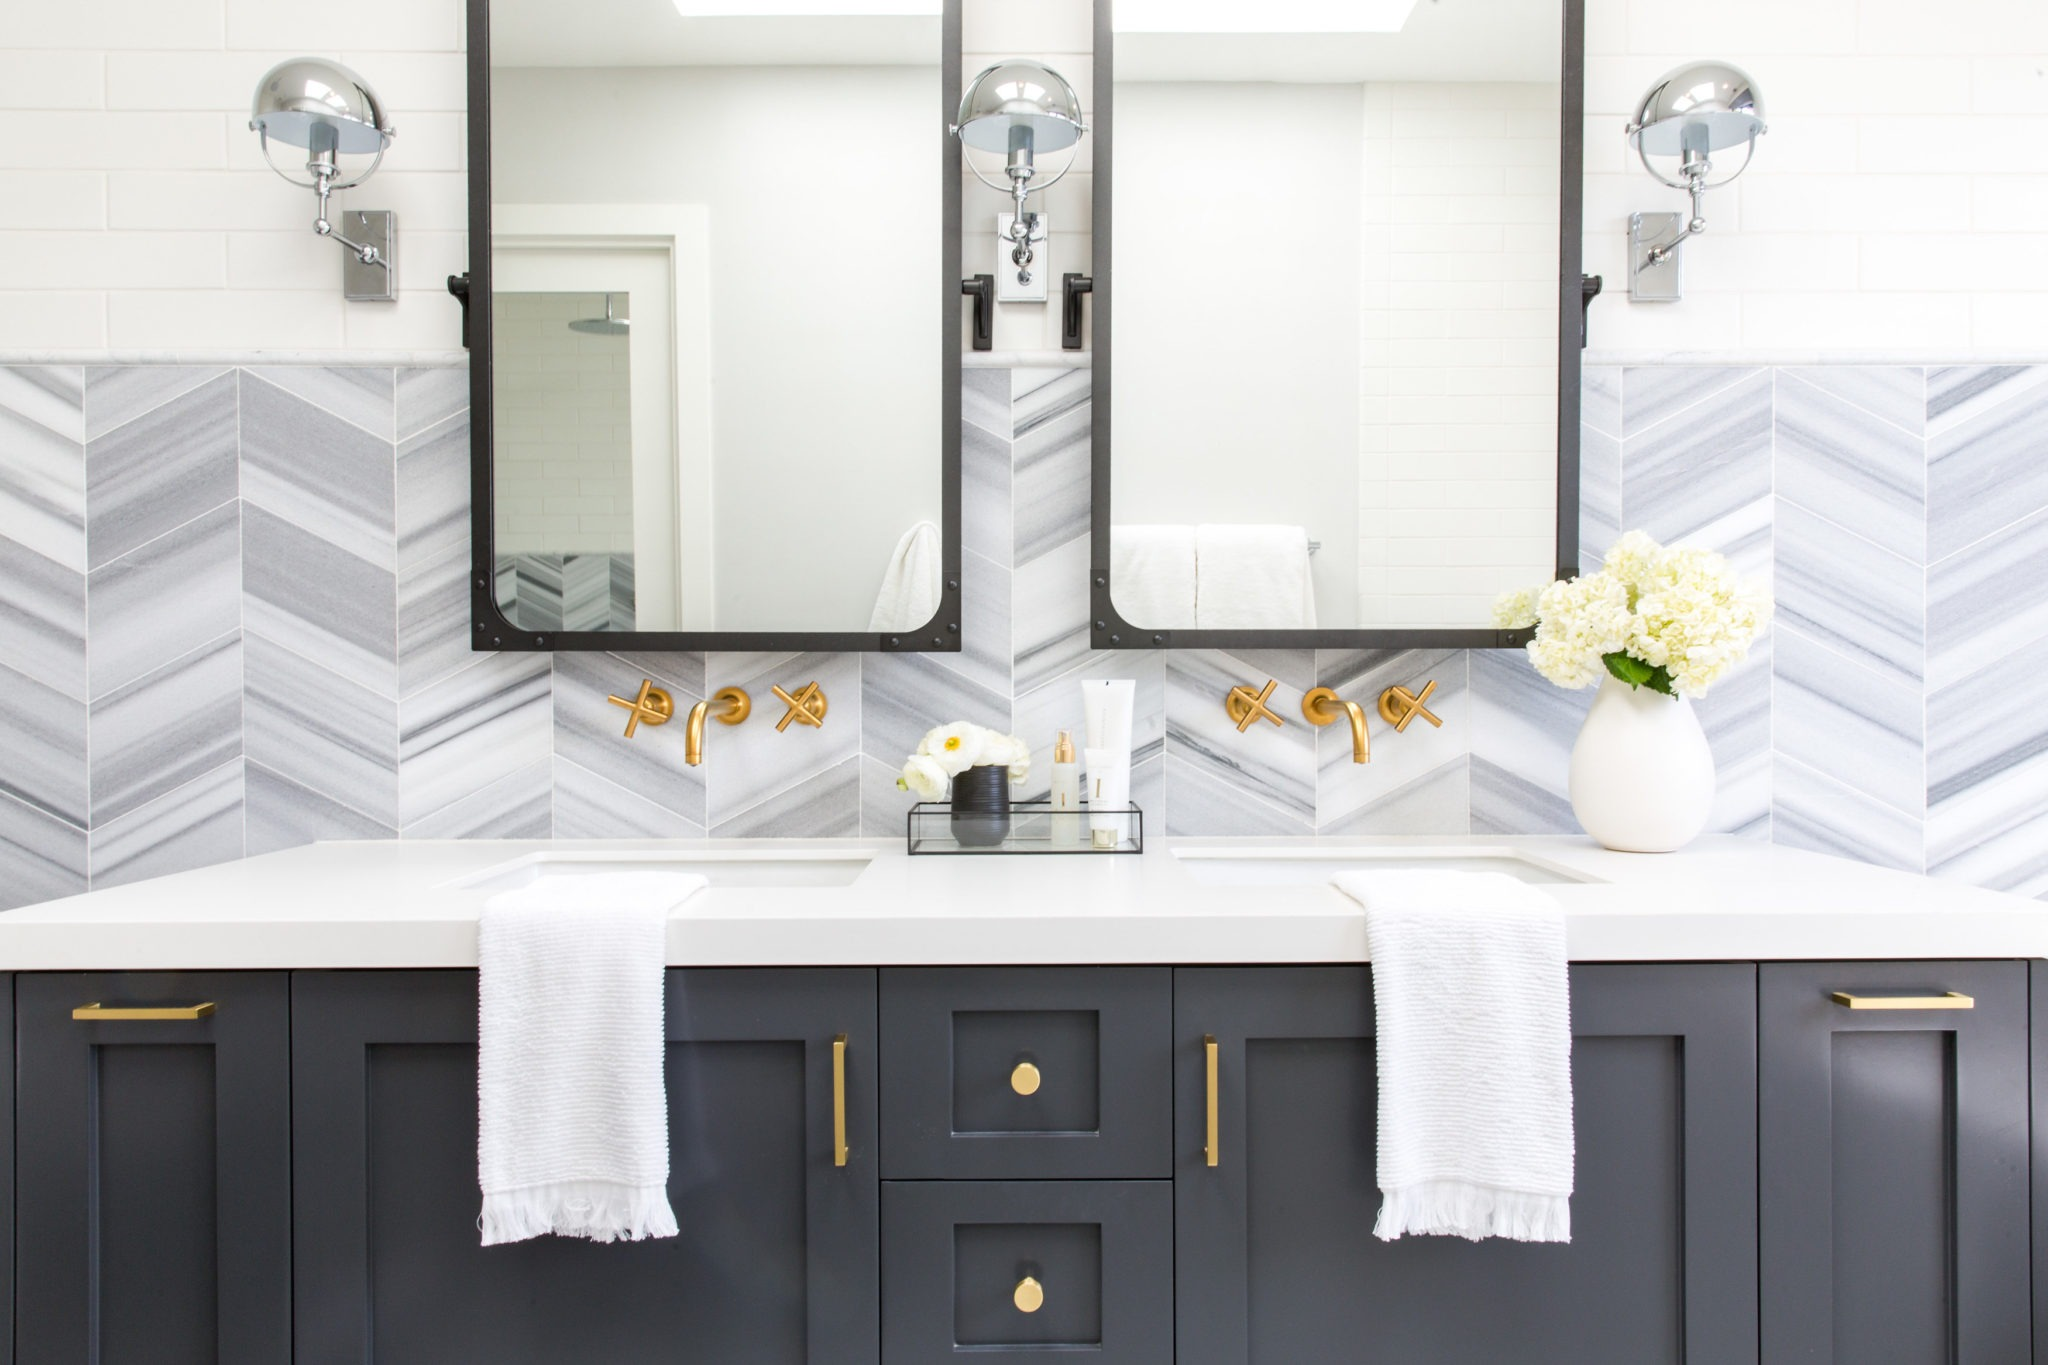 Remodeling? Let Us Suggest These Double Vanity Bathroom Ideas | Hunker